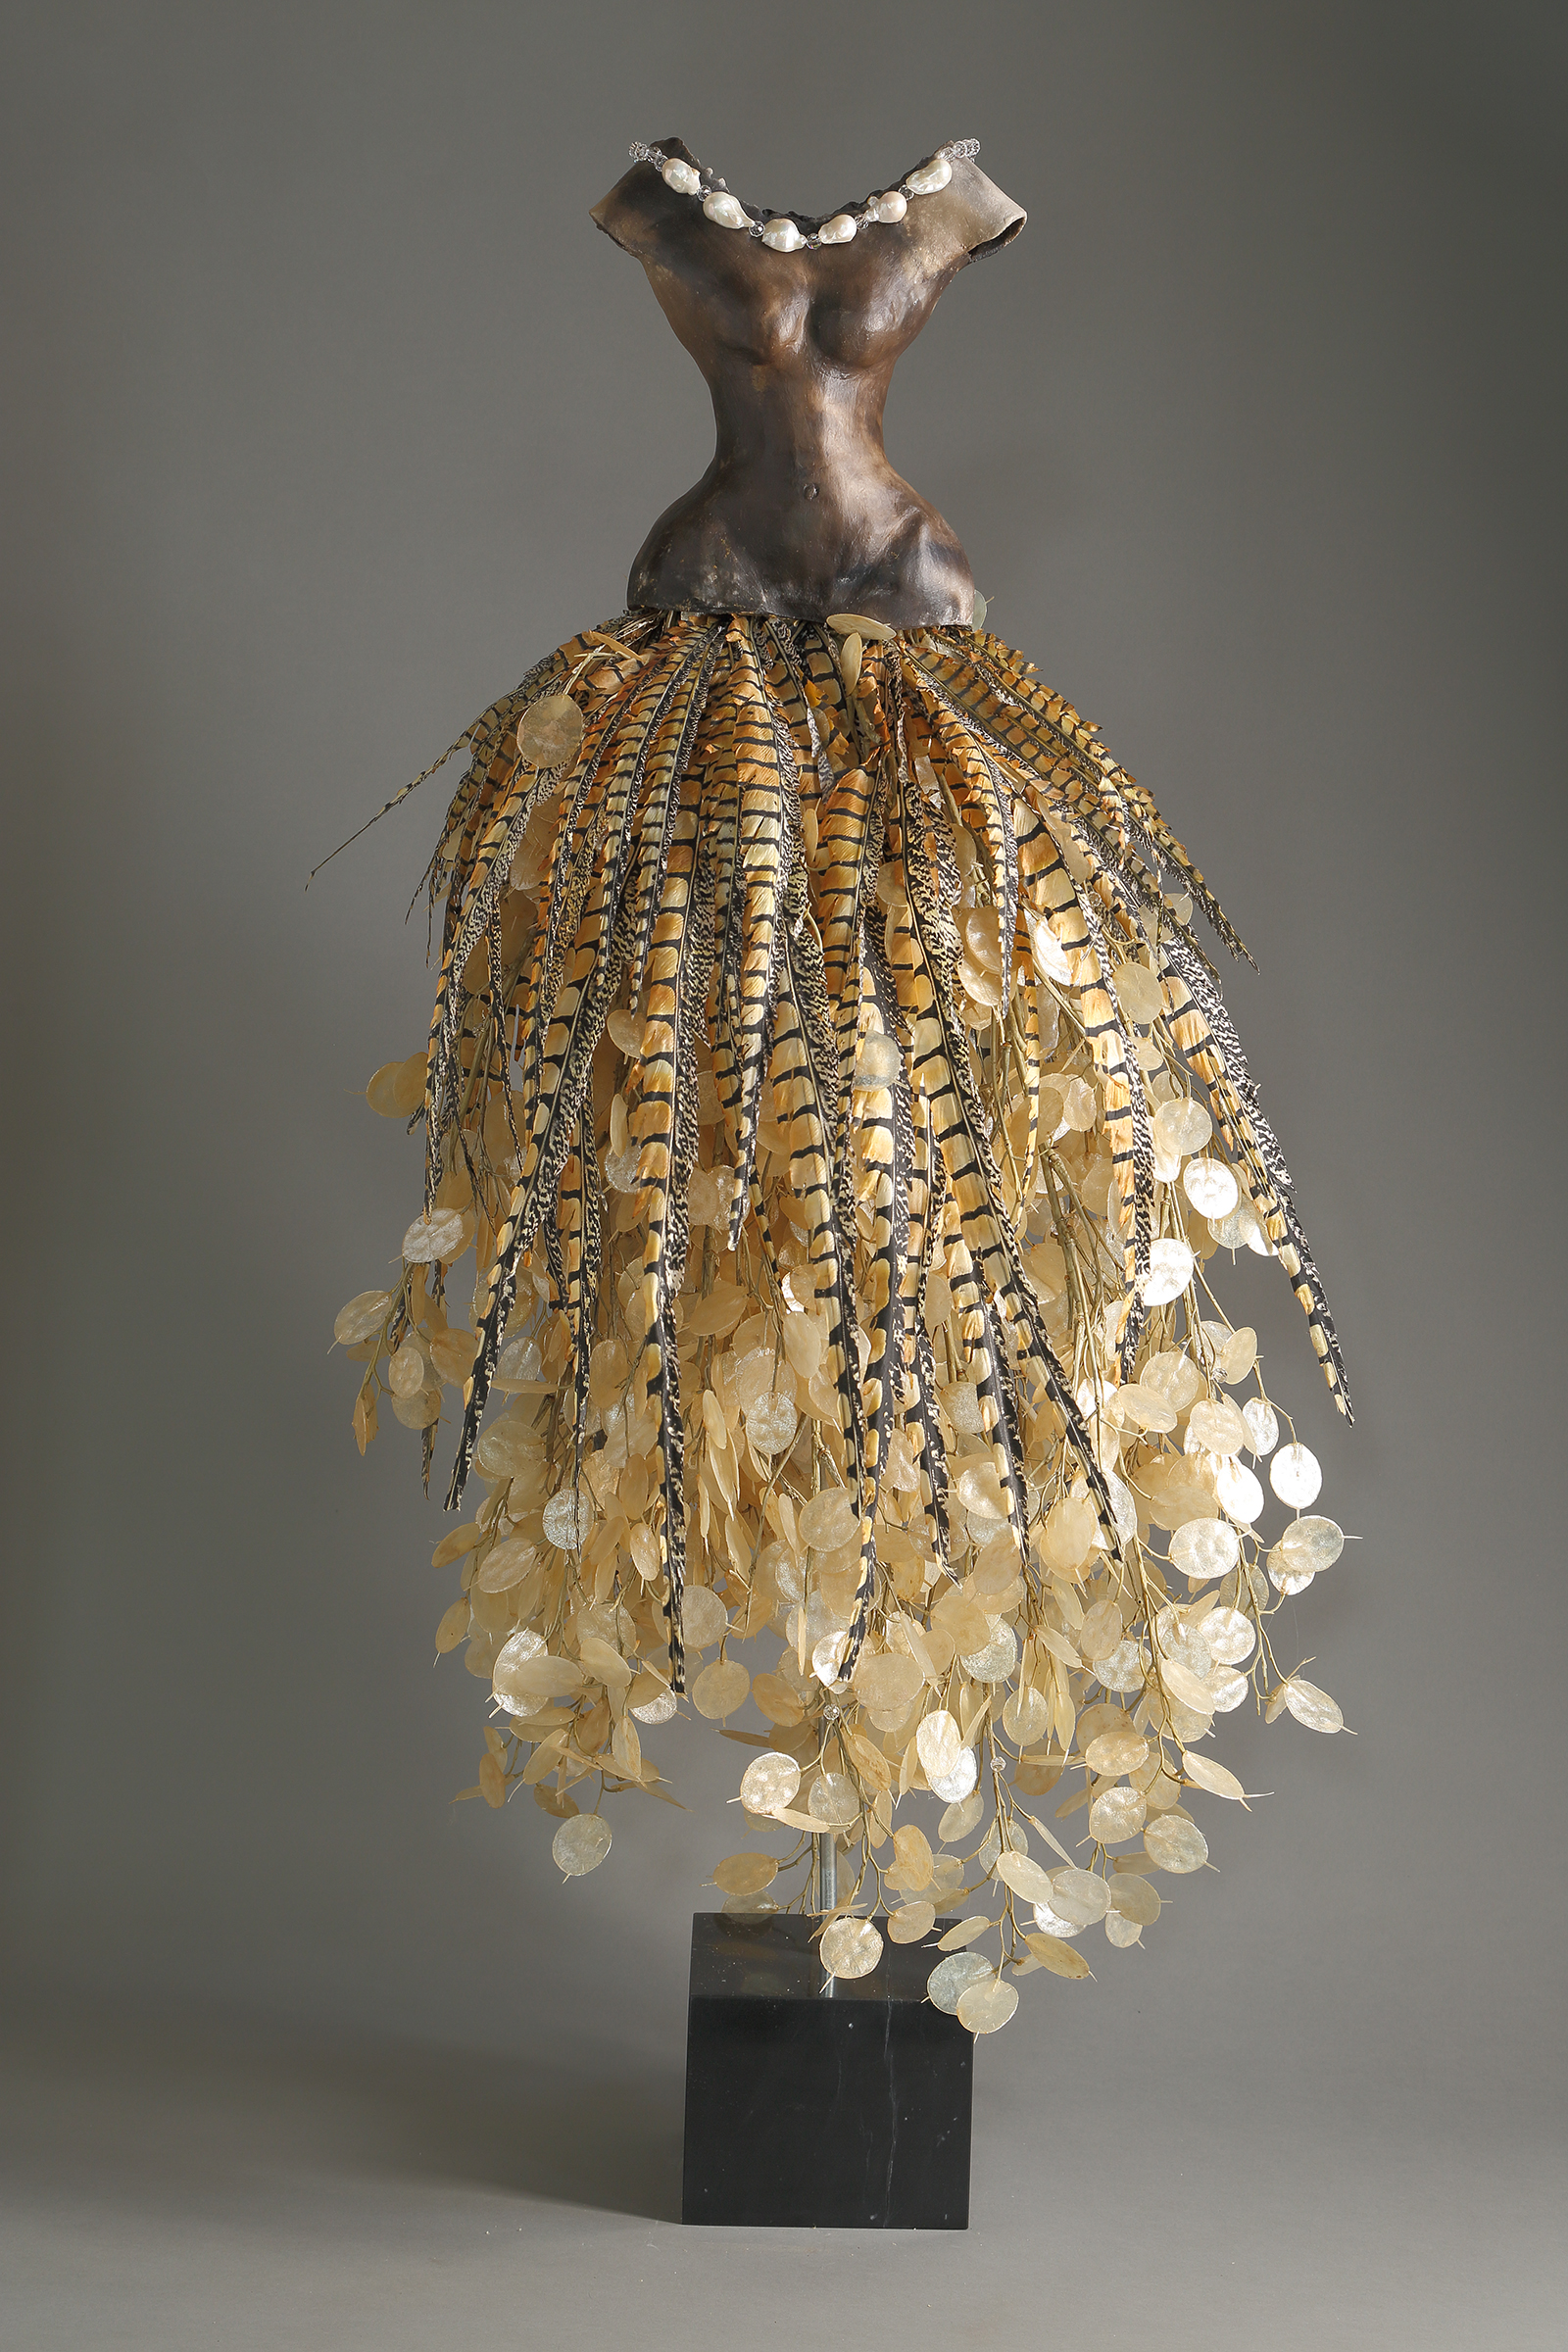 Estella Fransbergen - Sawdust Fired with Silver Dollar and Pheasant Feathers